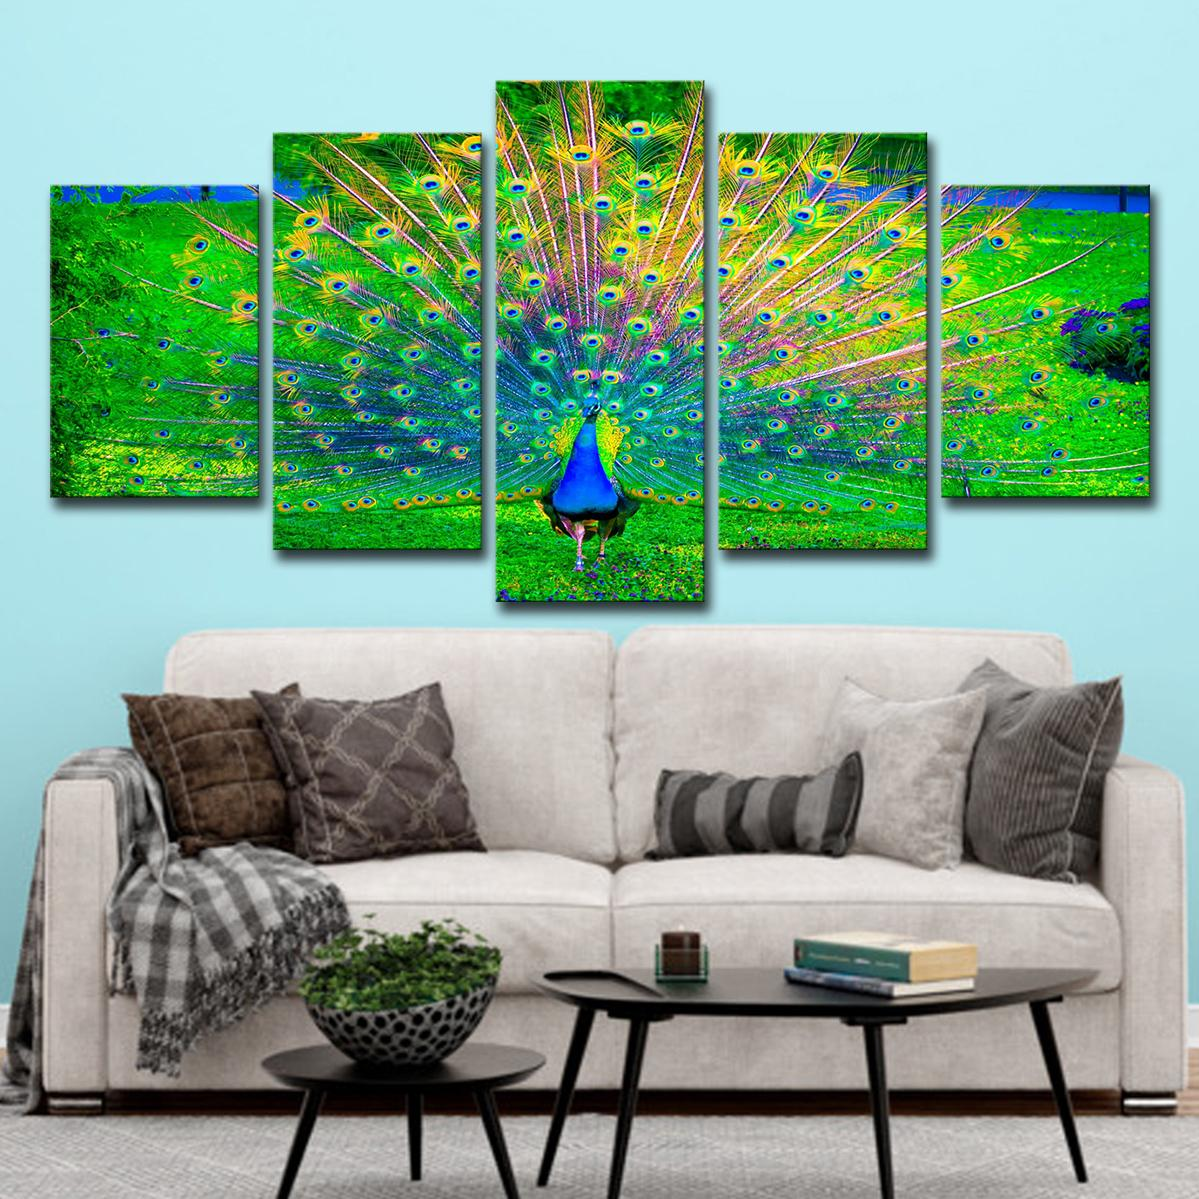 2019 Modern Home Wall Art Decor Frame Canvas Pictures Hd Printed Peacock Open Green Screen Paintings Animal Posters From Gzz198301121 18 49